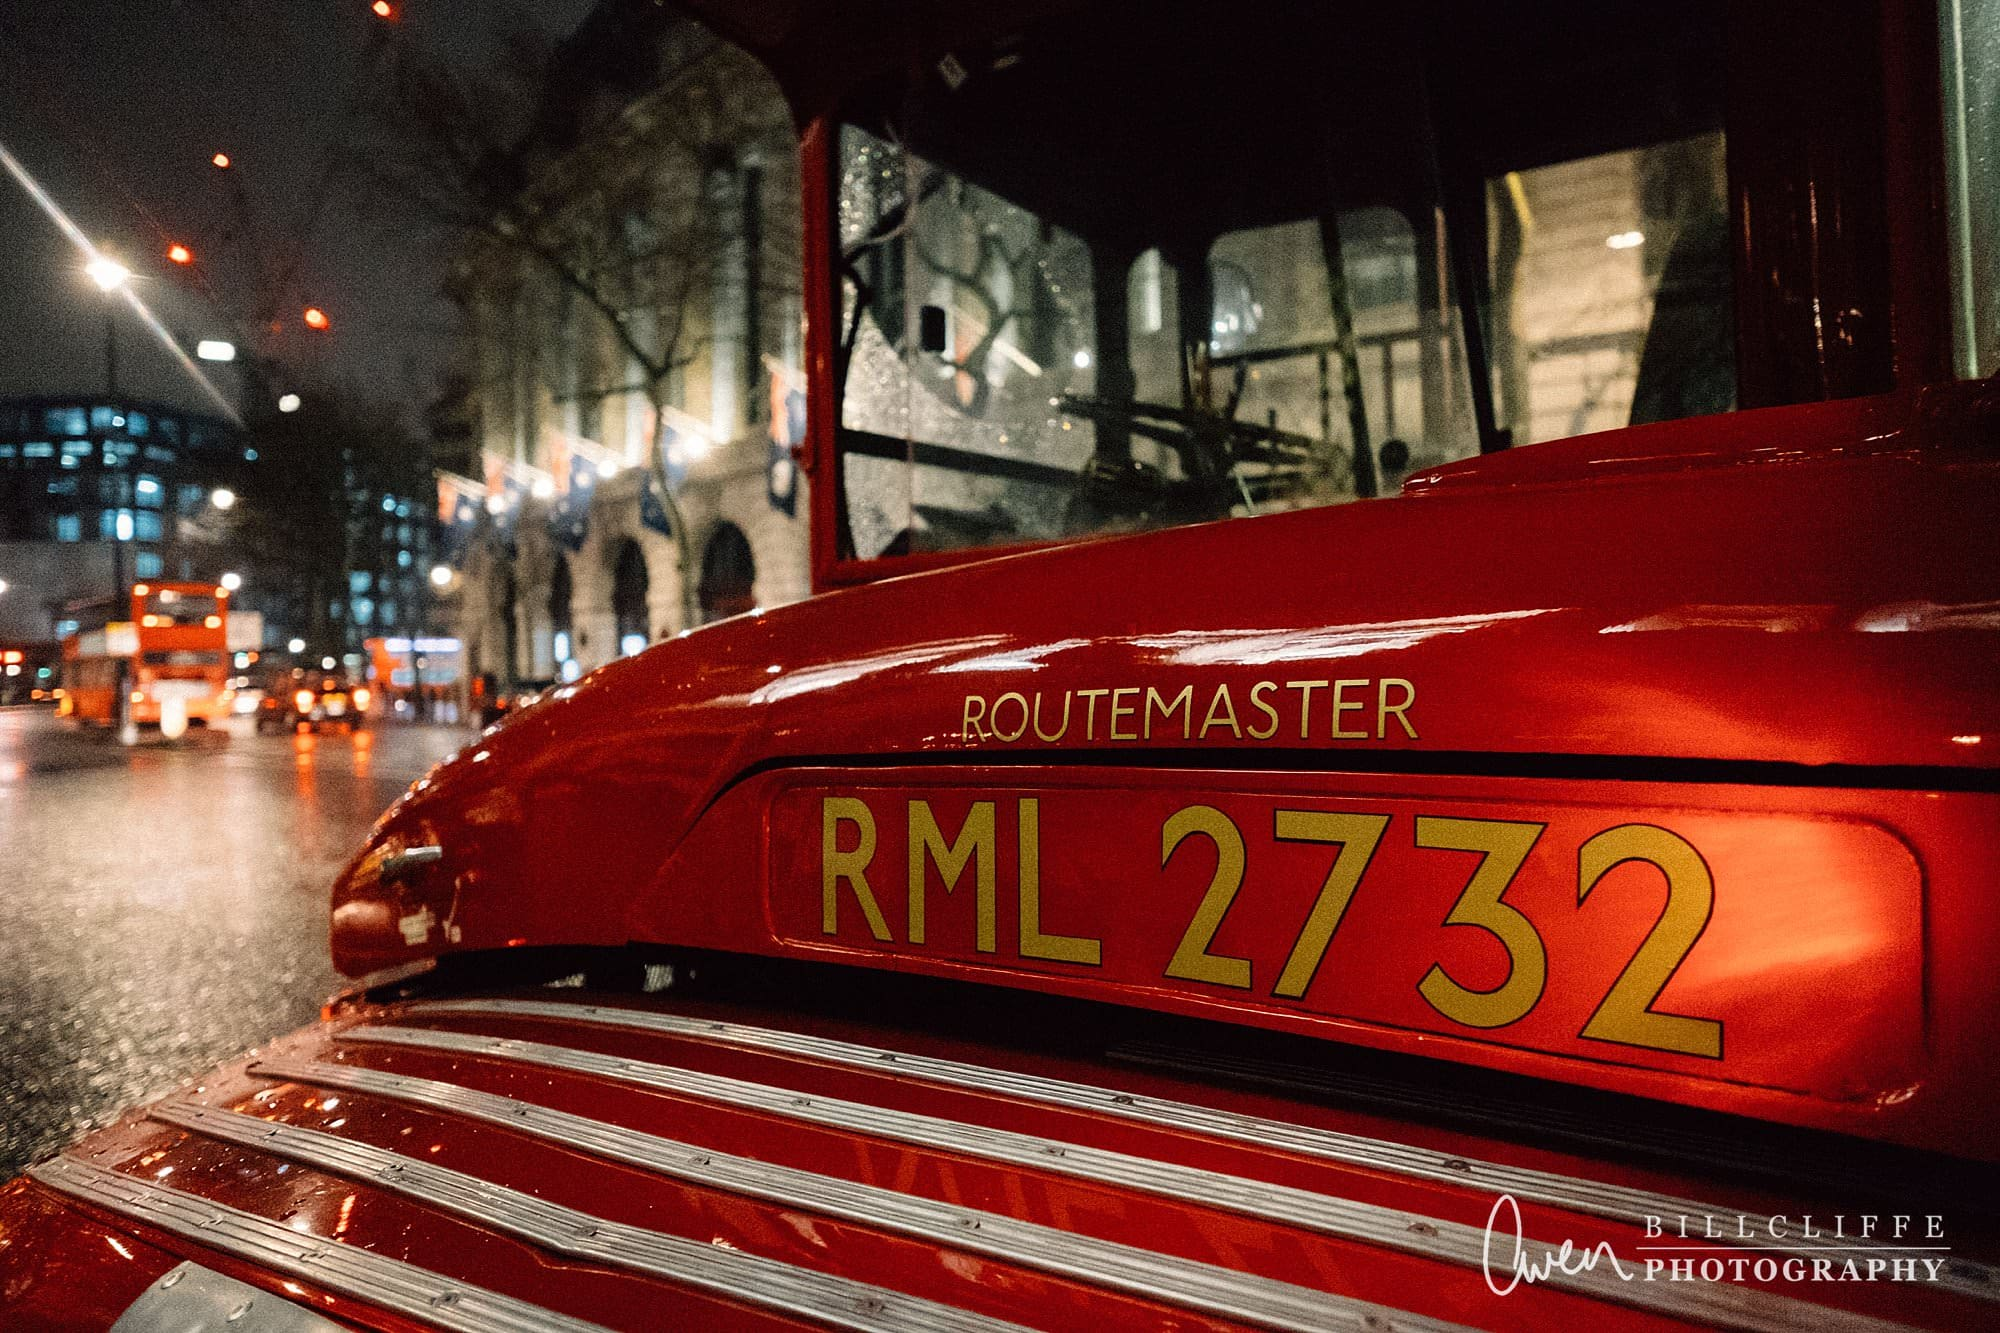 london engagement proposal photographer routemaster RE 002 - When Richard Proposed To Emma on a London Routemaster Bus